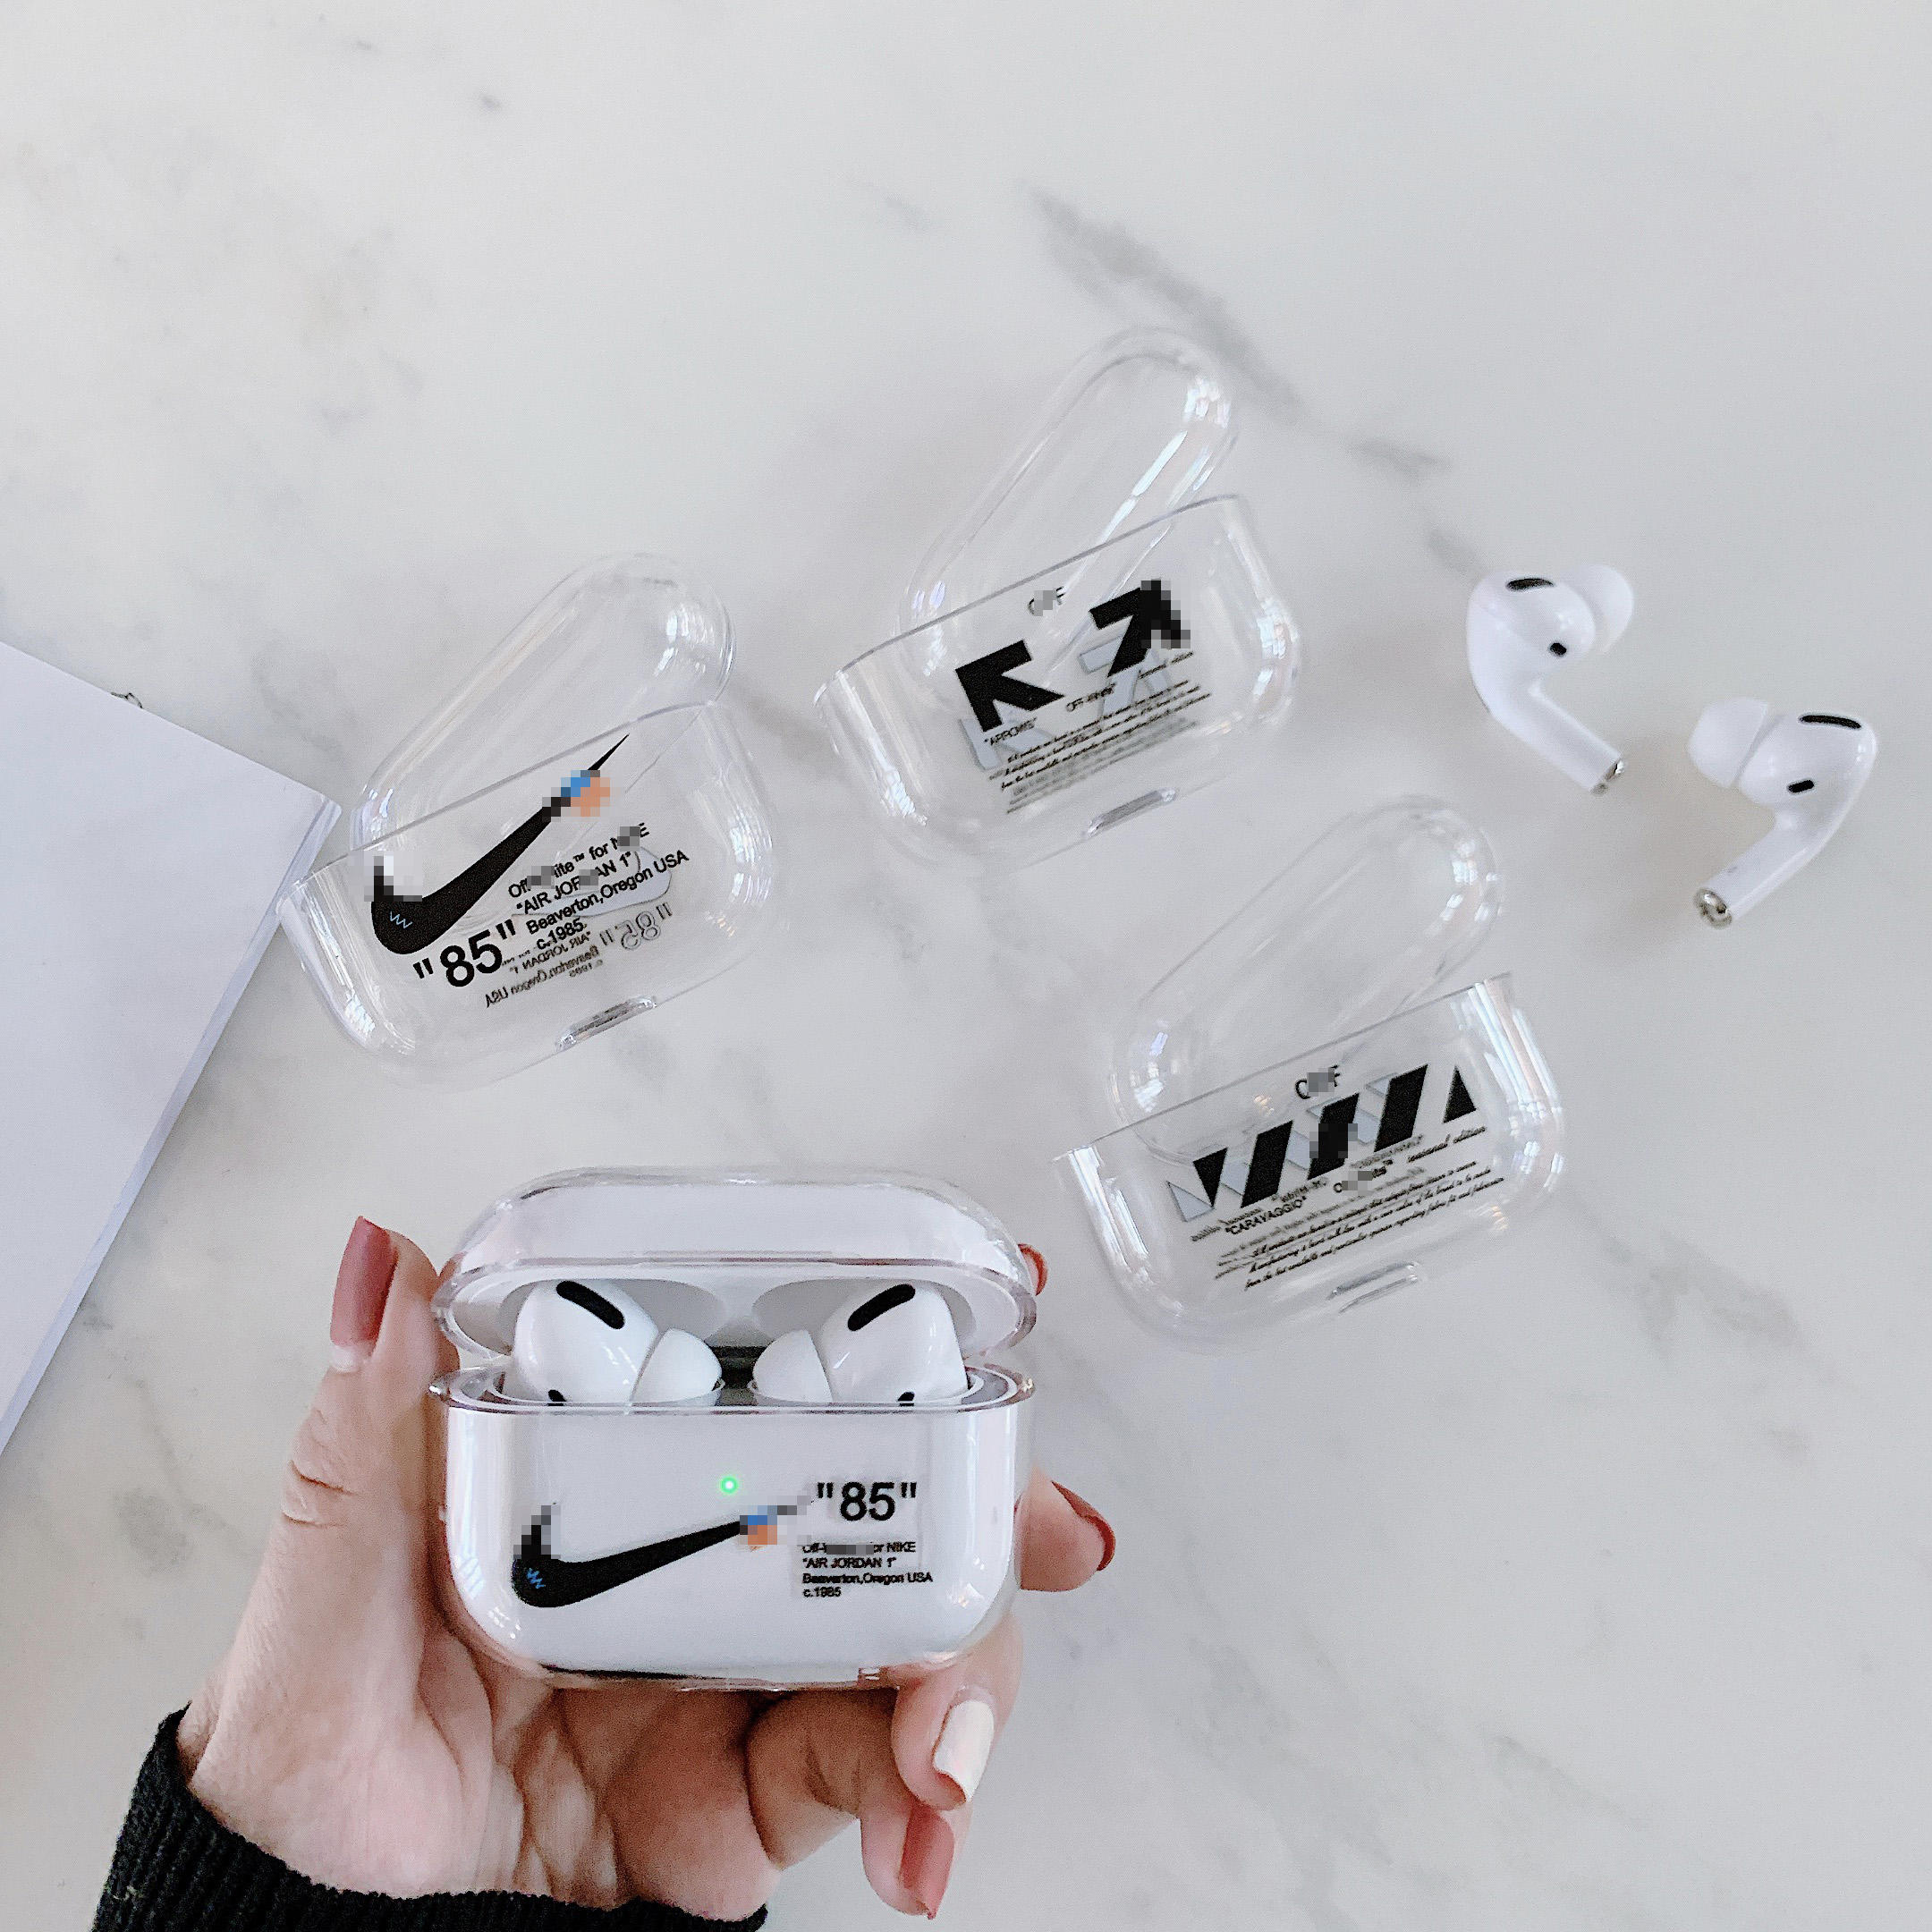 Airpods pro 2019 nouveau pour airpod 3 pro Hors Whit 01 02 03 04 <span class=keywords><strong>nike</strong></span> 85 mona lisa rue mode conception housse antichoc